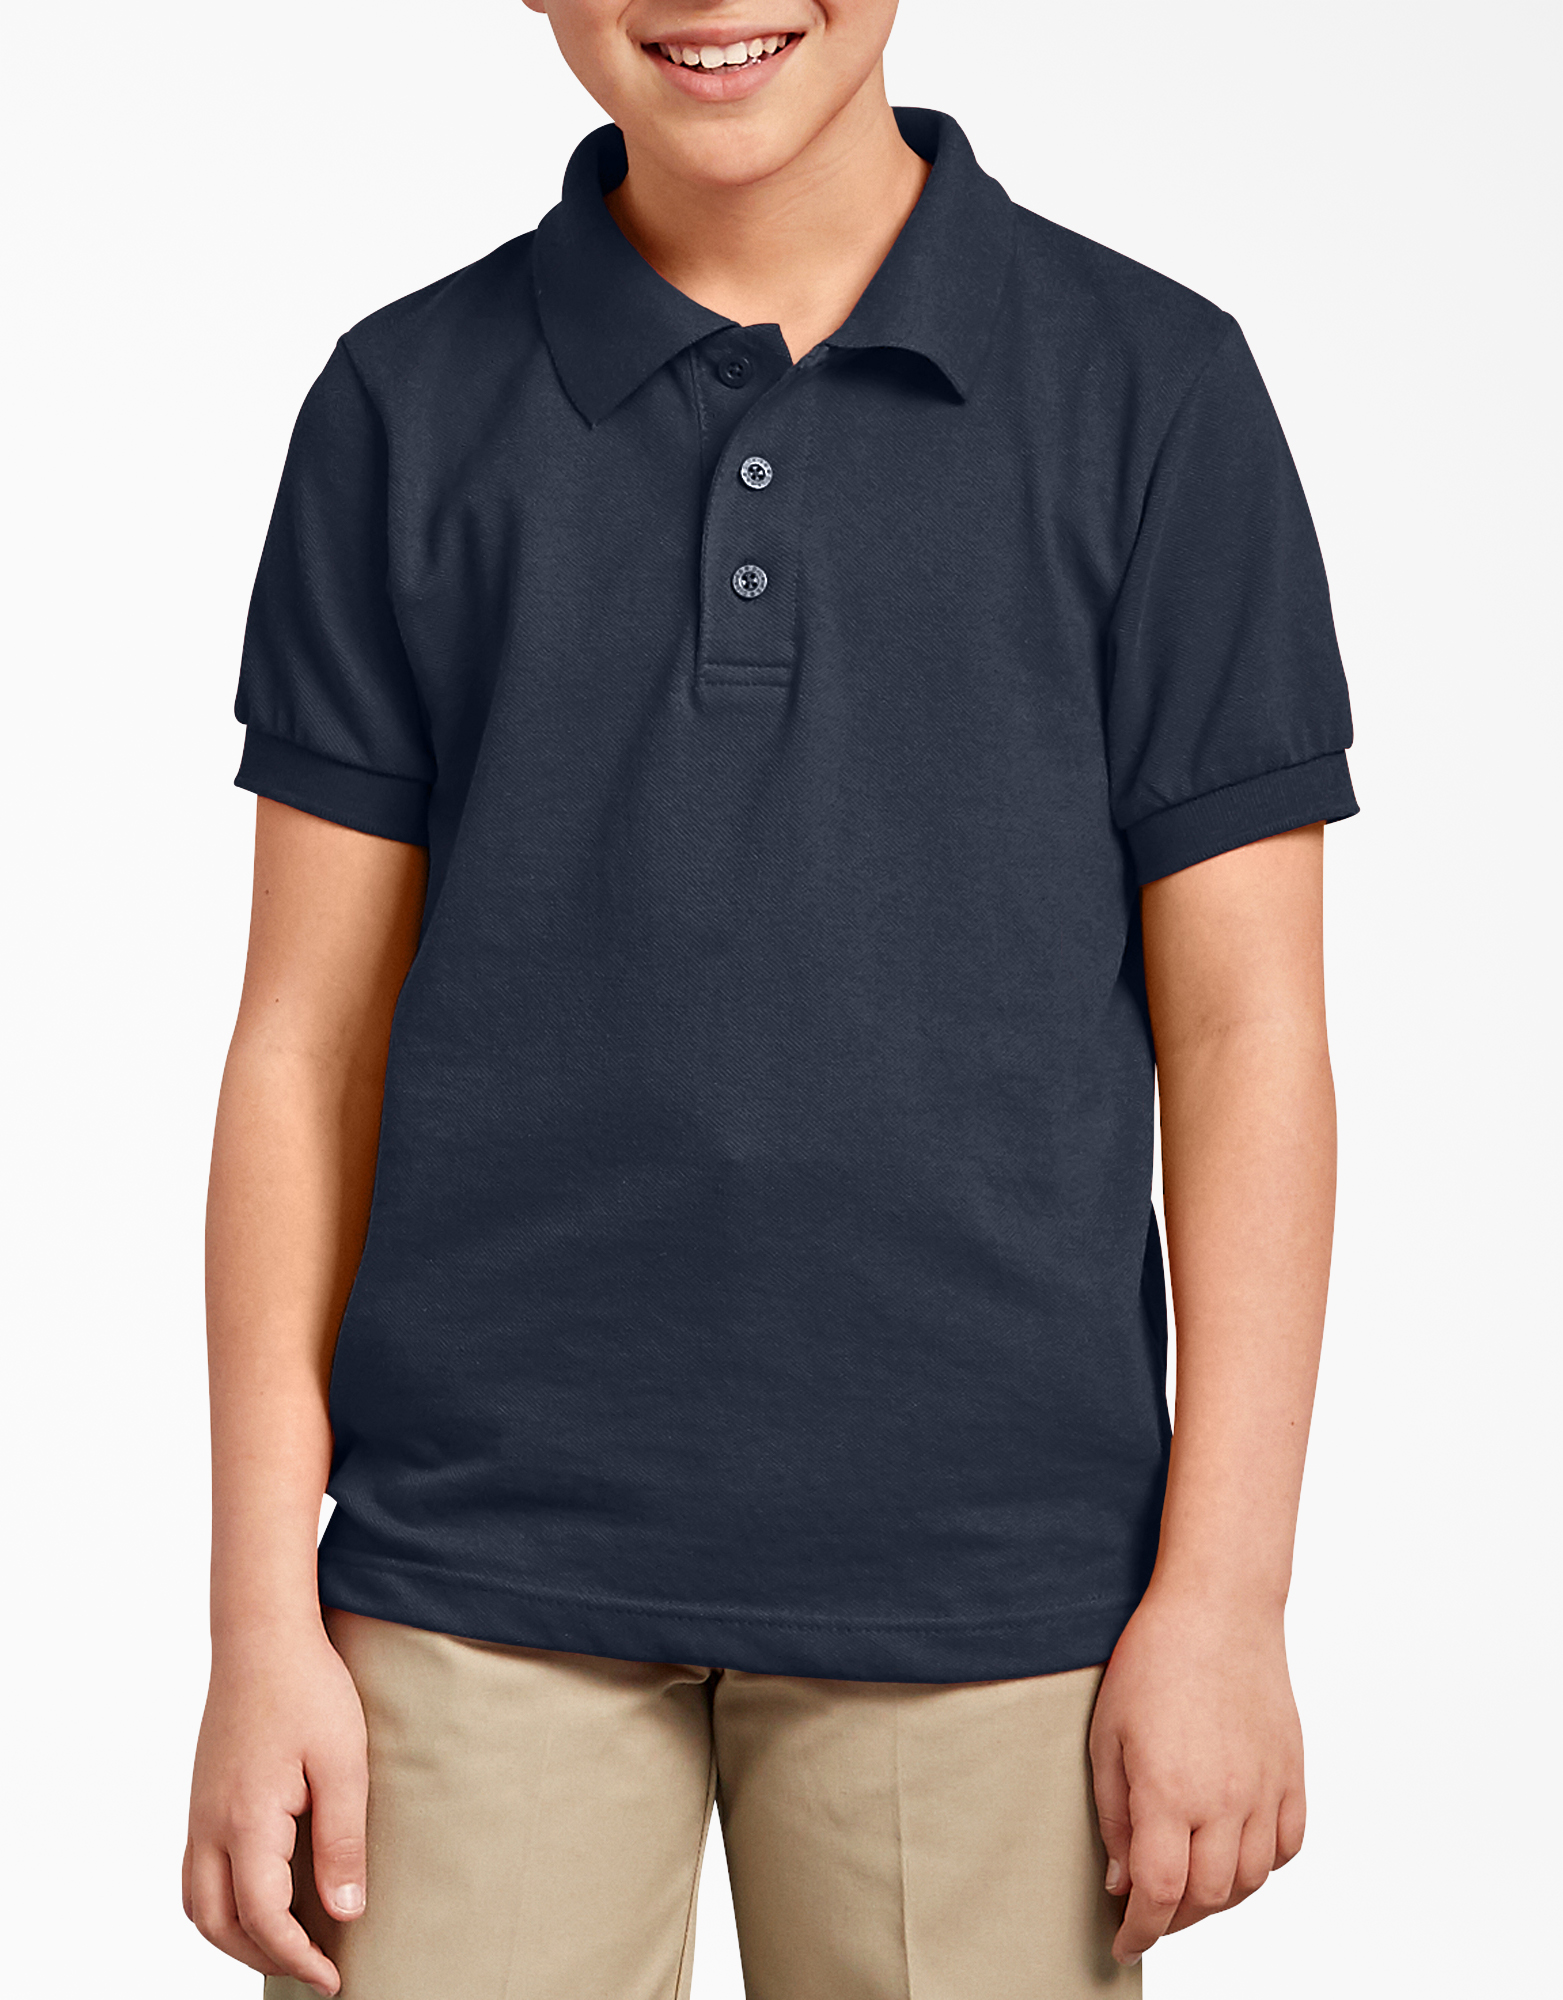 Kids' Short Sleeve Pique Polo Shirt, 4-20 - Dark Navy (DN)